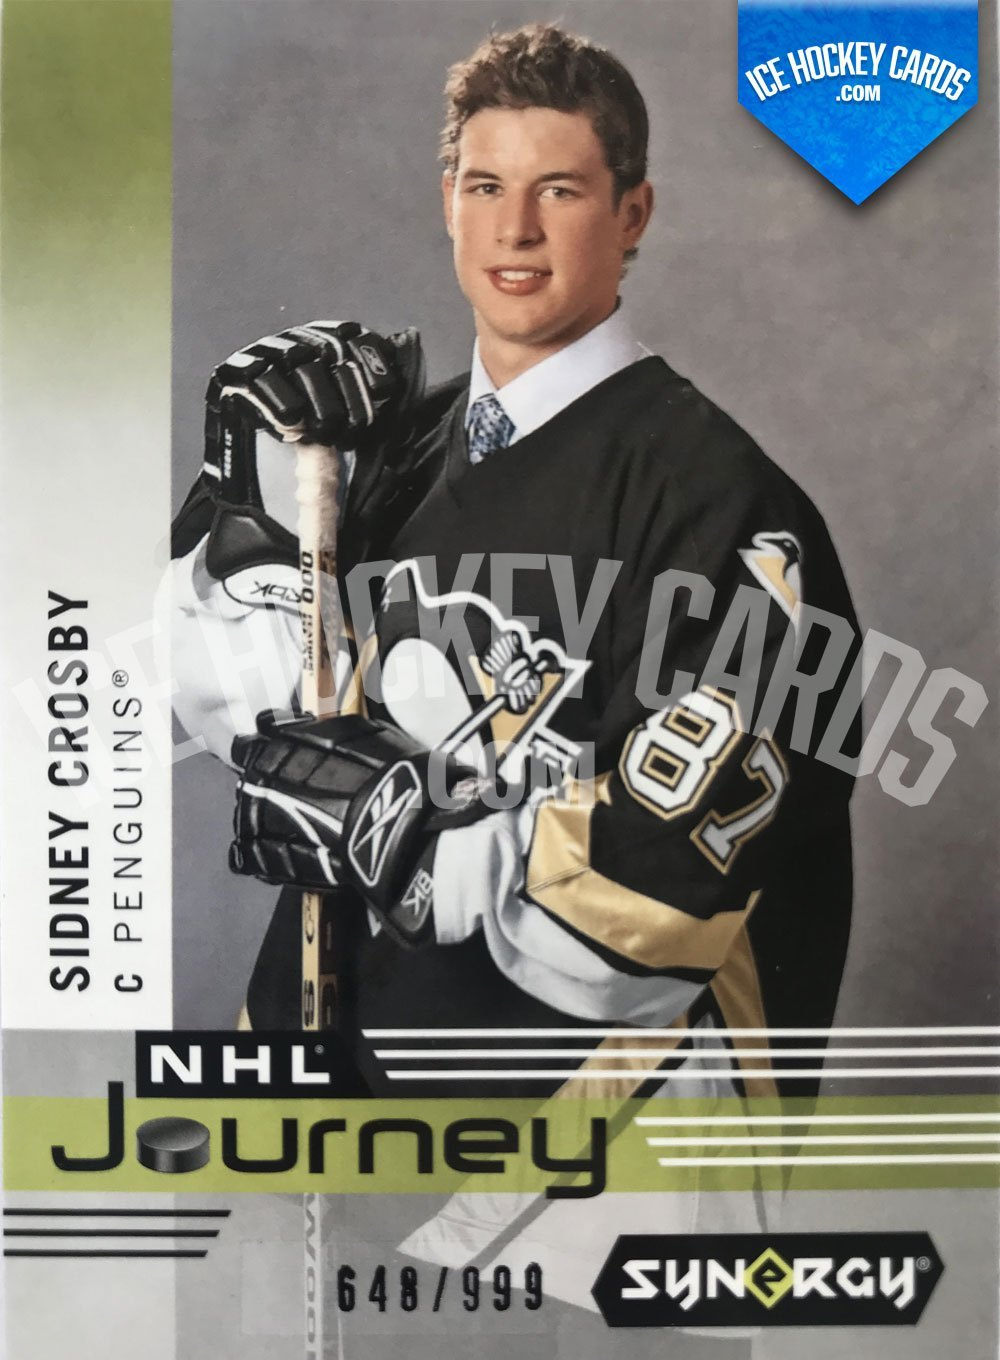 Upper Deck - Synergy 19-20 - Sidney Crosby NHL Journey